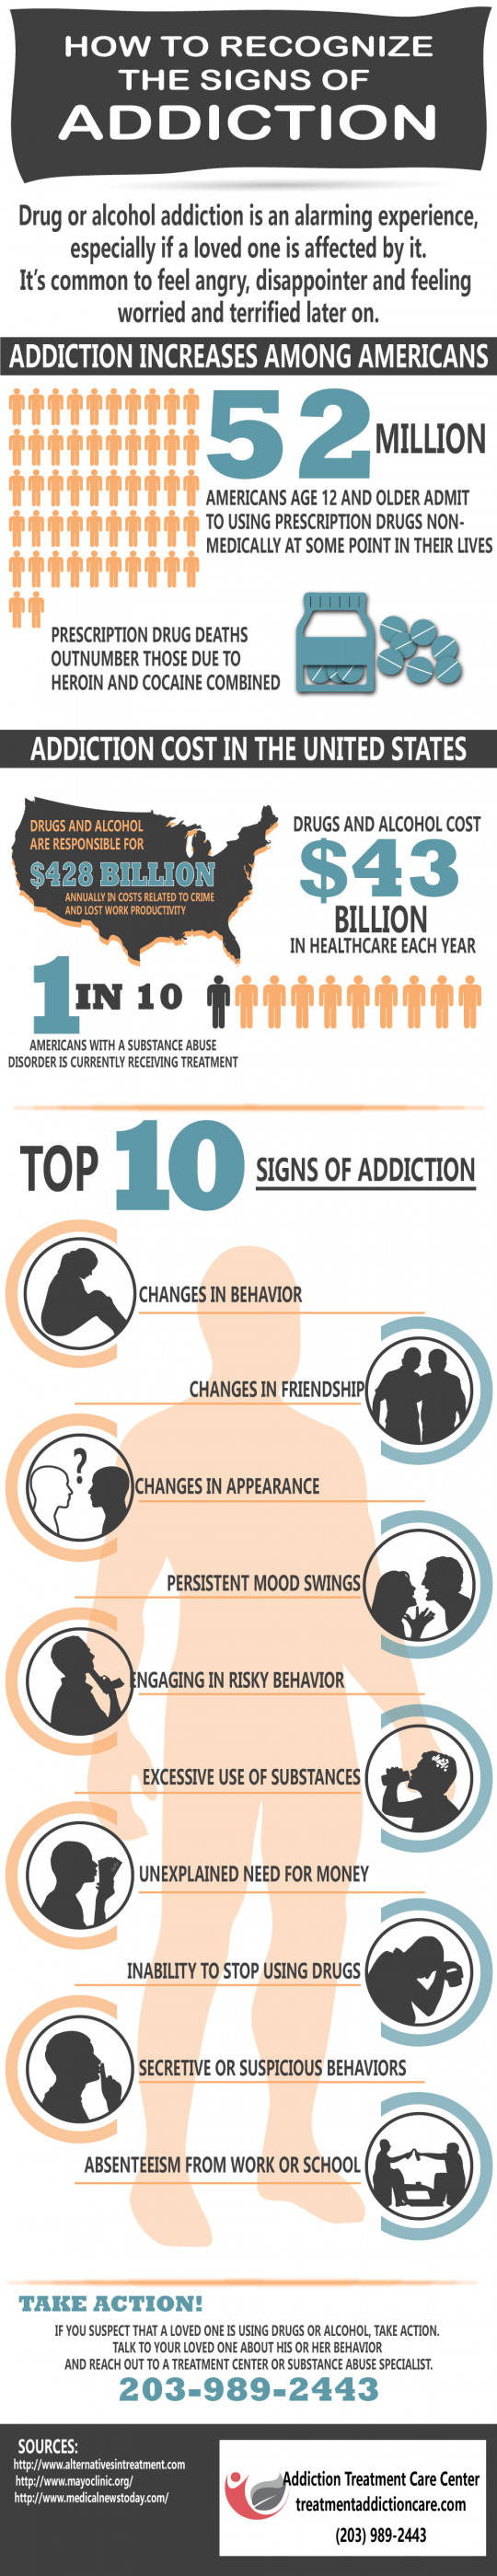 Signs of Addiction Infographic | Addiction Treatment Care Center